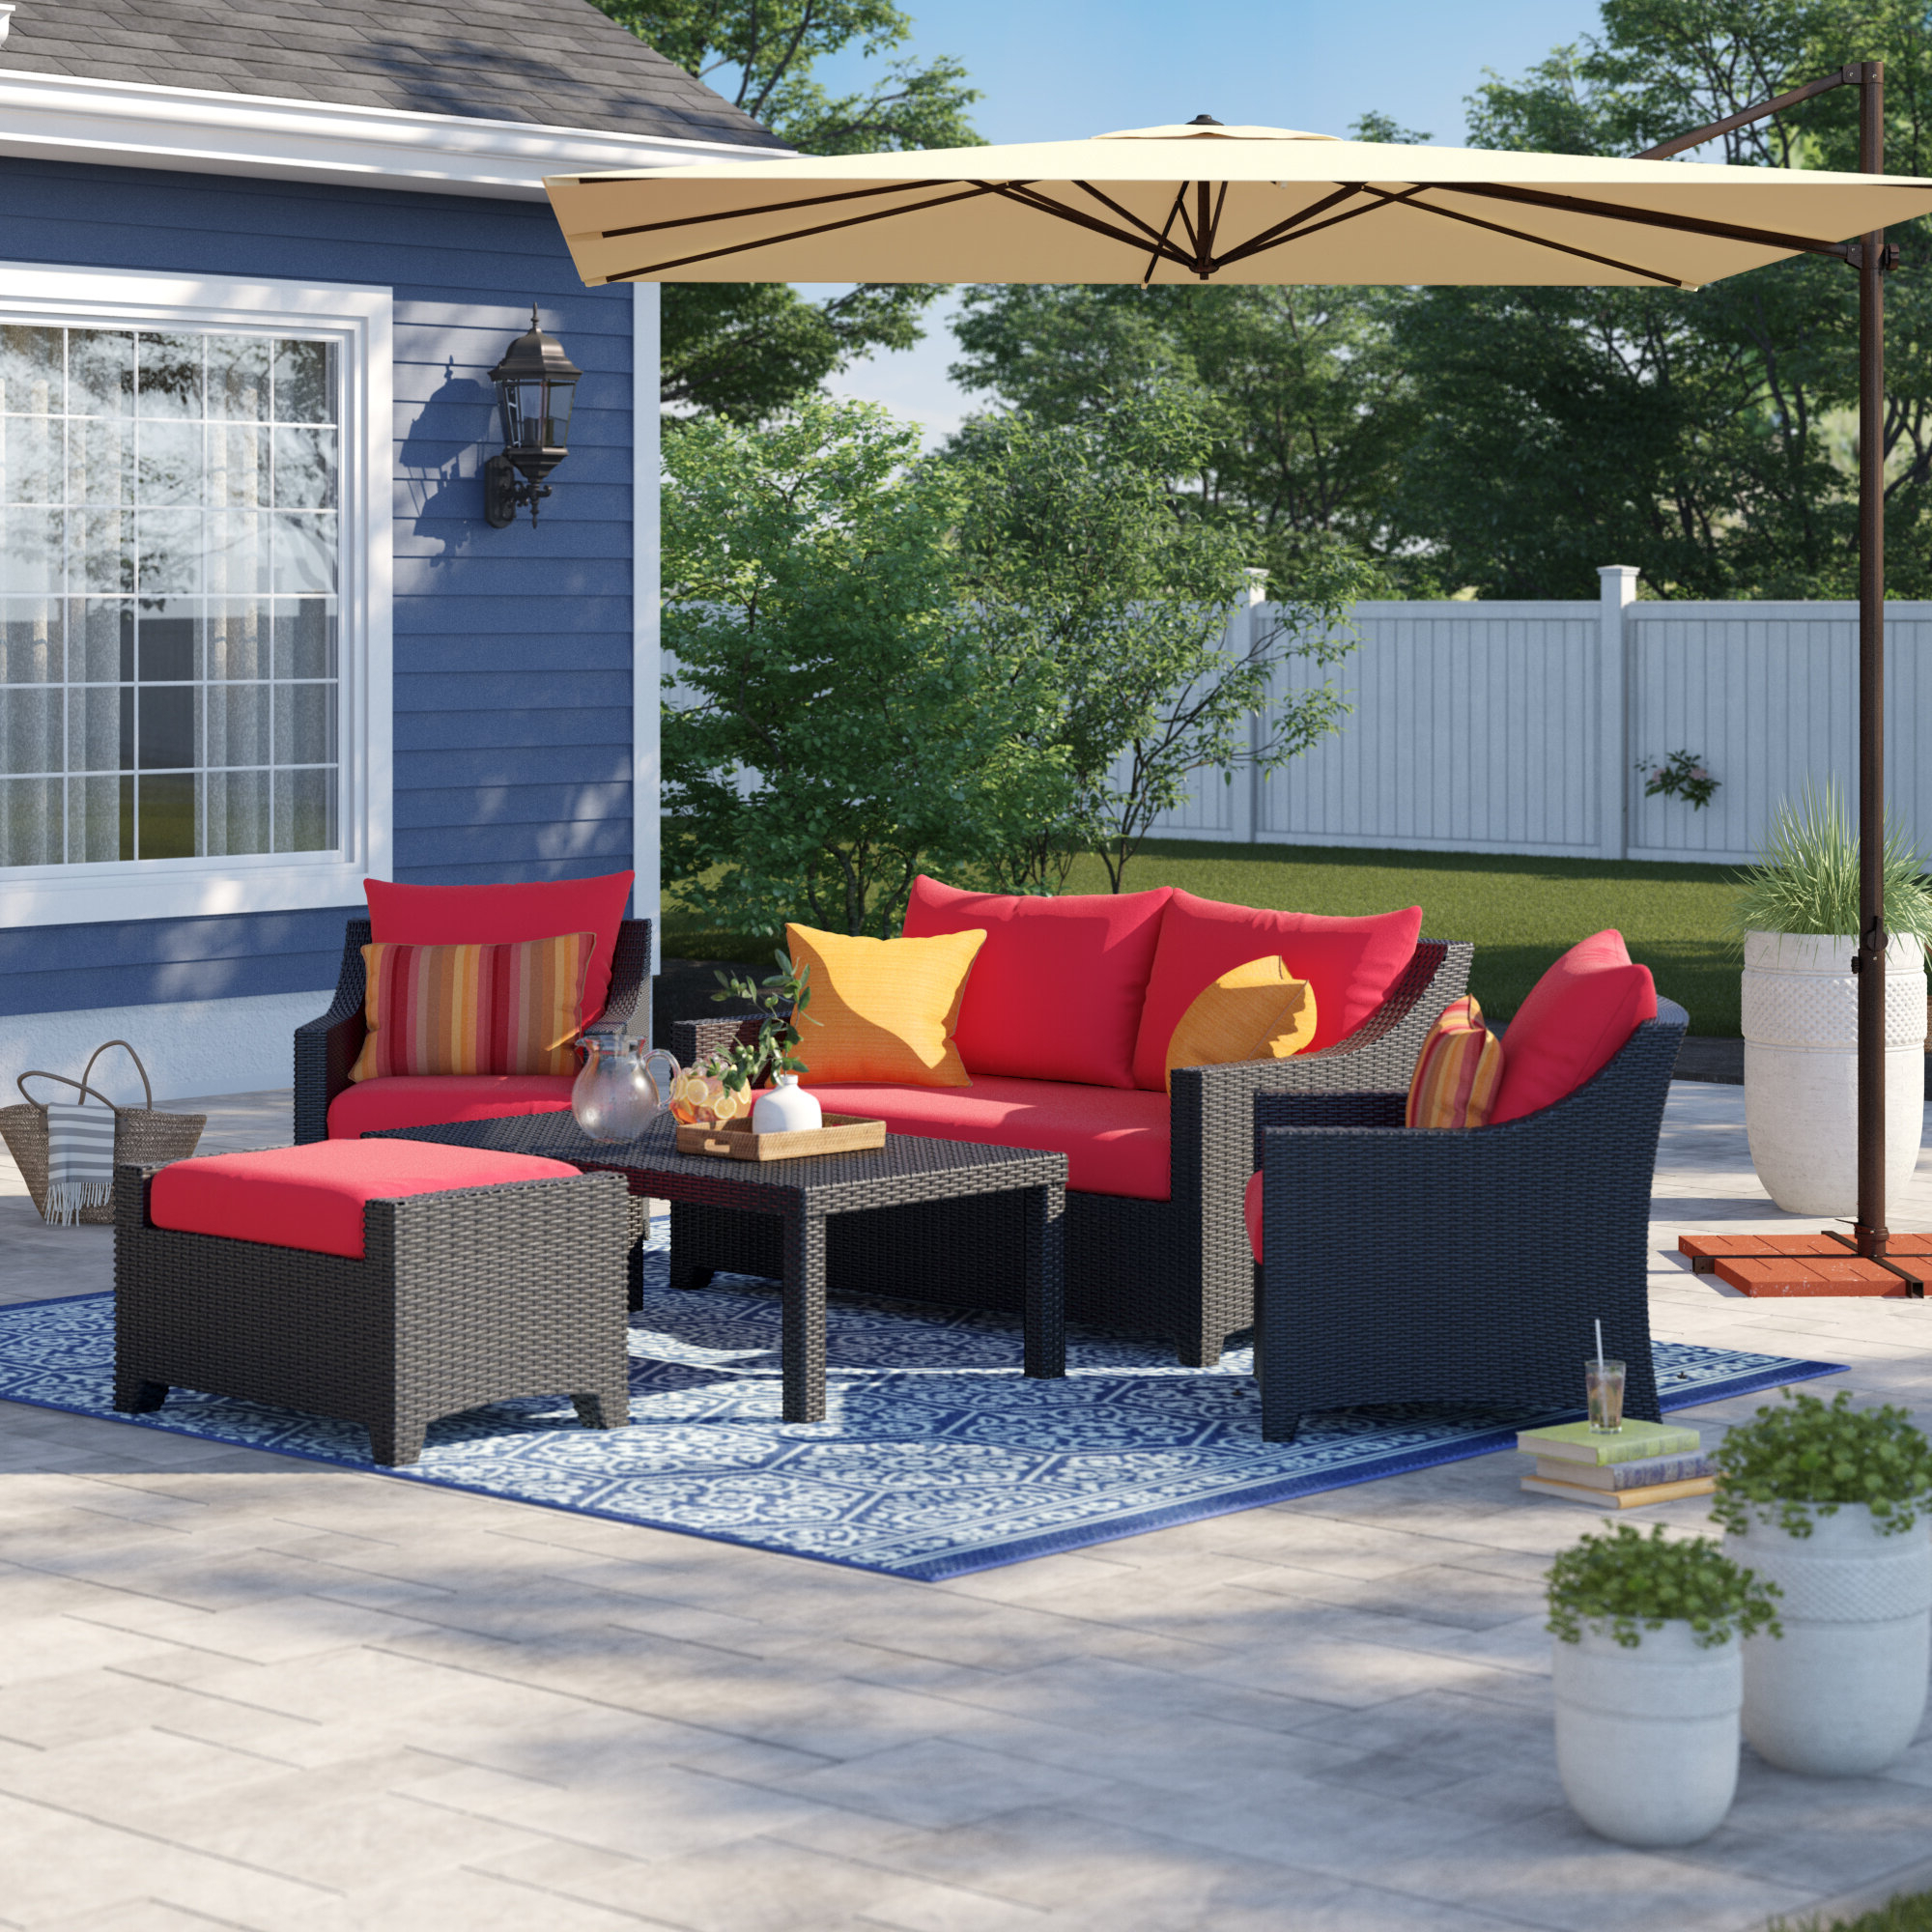 Northridge 5 Piece Sunbrella Sofa Set With Cushions Regarding Current Northridge Loveseats With Cushions (View 9 of 20)